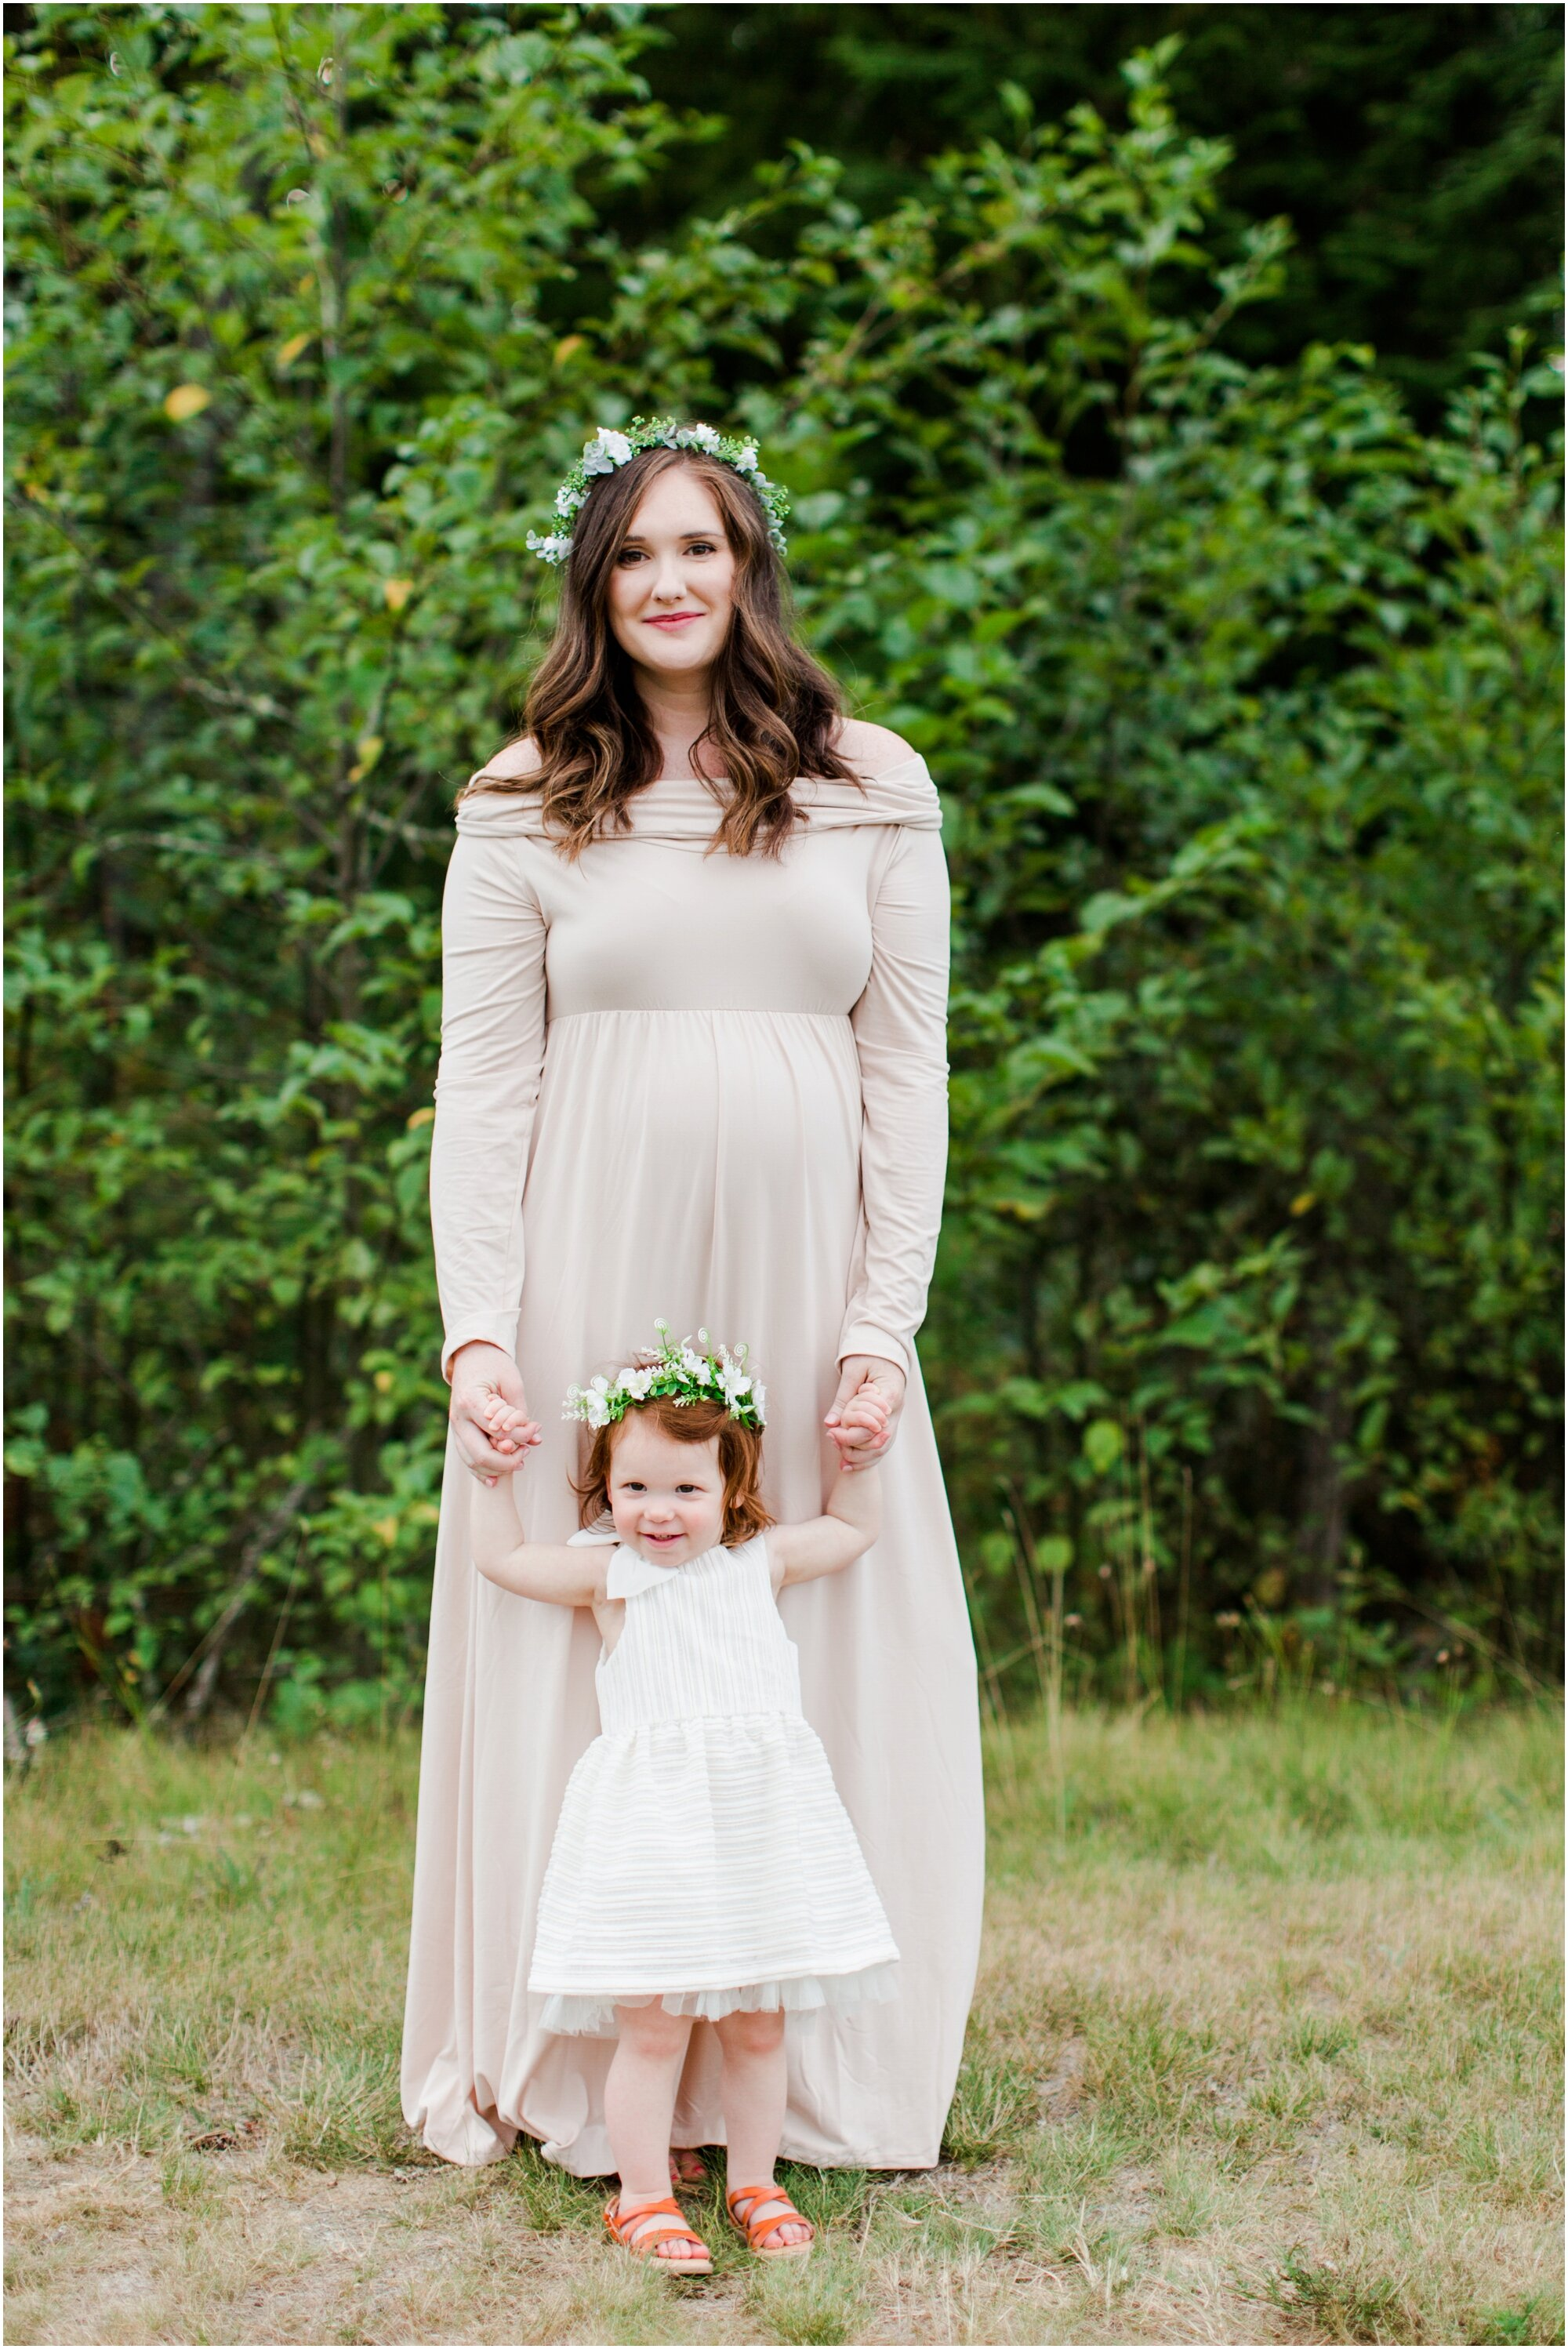 Maternity photos in Tehaleh Bonney Lake, WA. Photos by Briana Calderon Photography based in the greater Seattle-Tacoma Area._1390.jpg